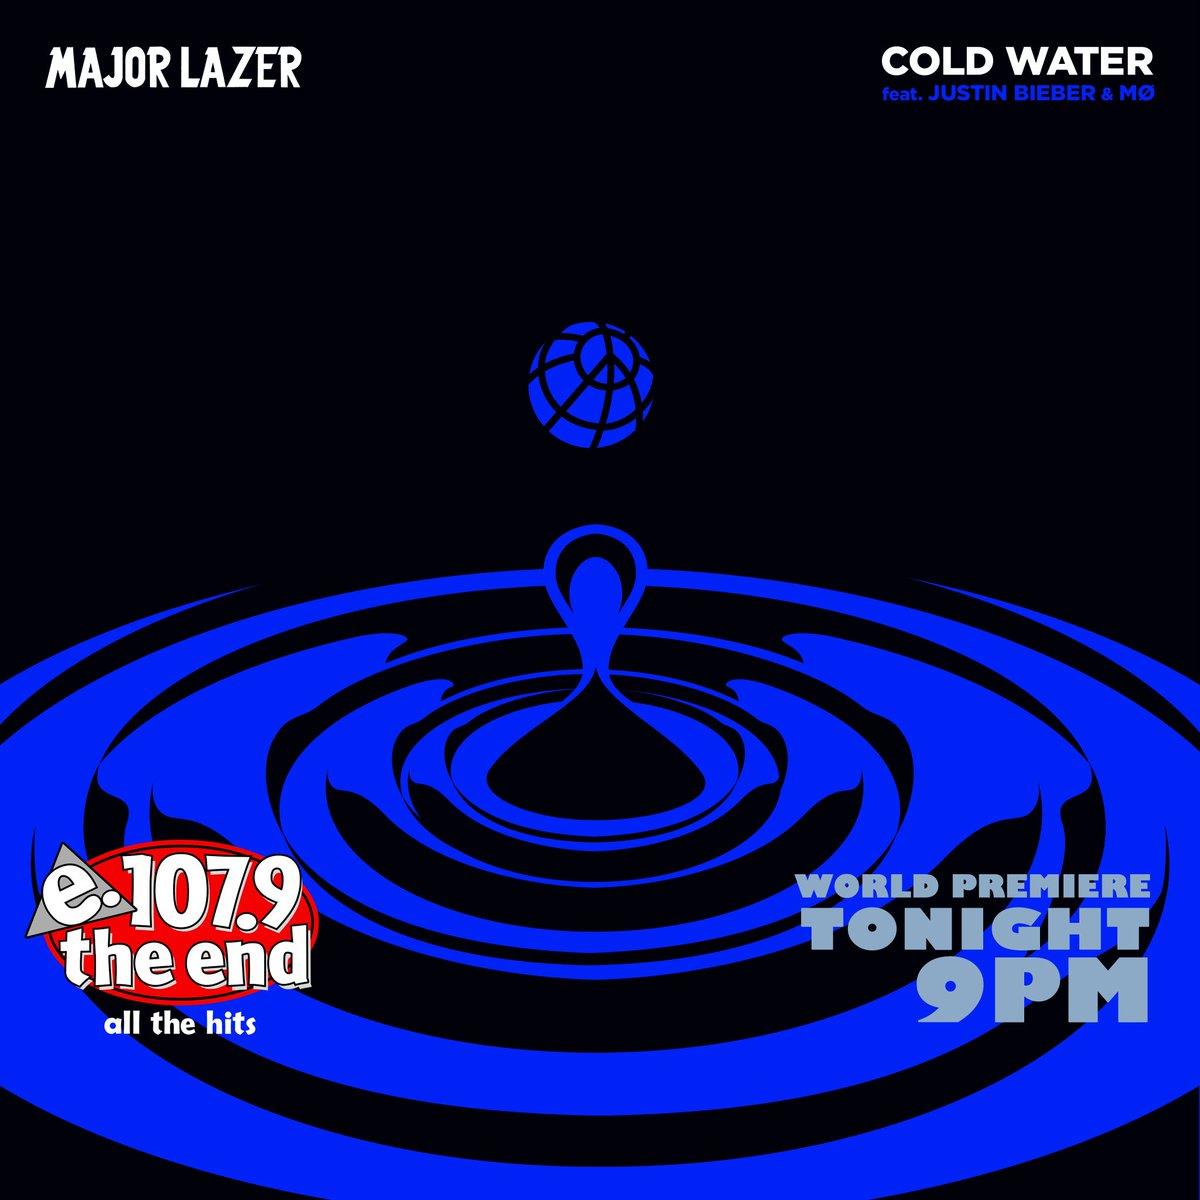 "Tonight at 9pm on 107.9 The End hear the world premiere of @justinbieber and @MAJORLAZER's new song ""Cold Water""! https://t.co/Jp2JKyD1bS"